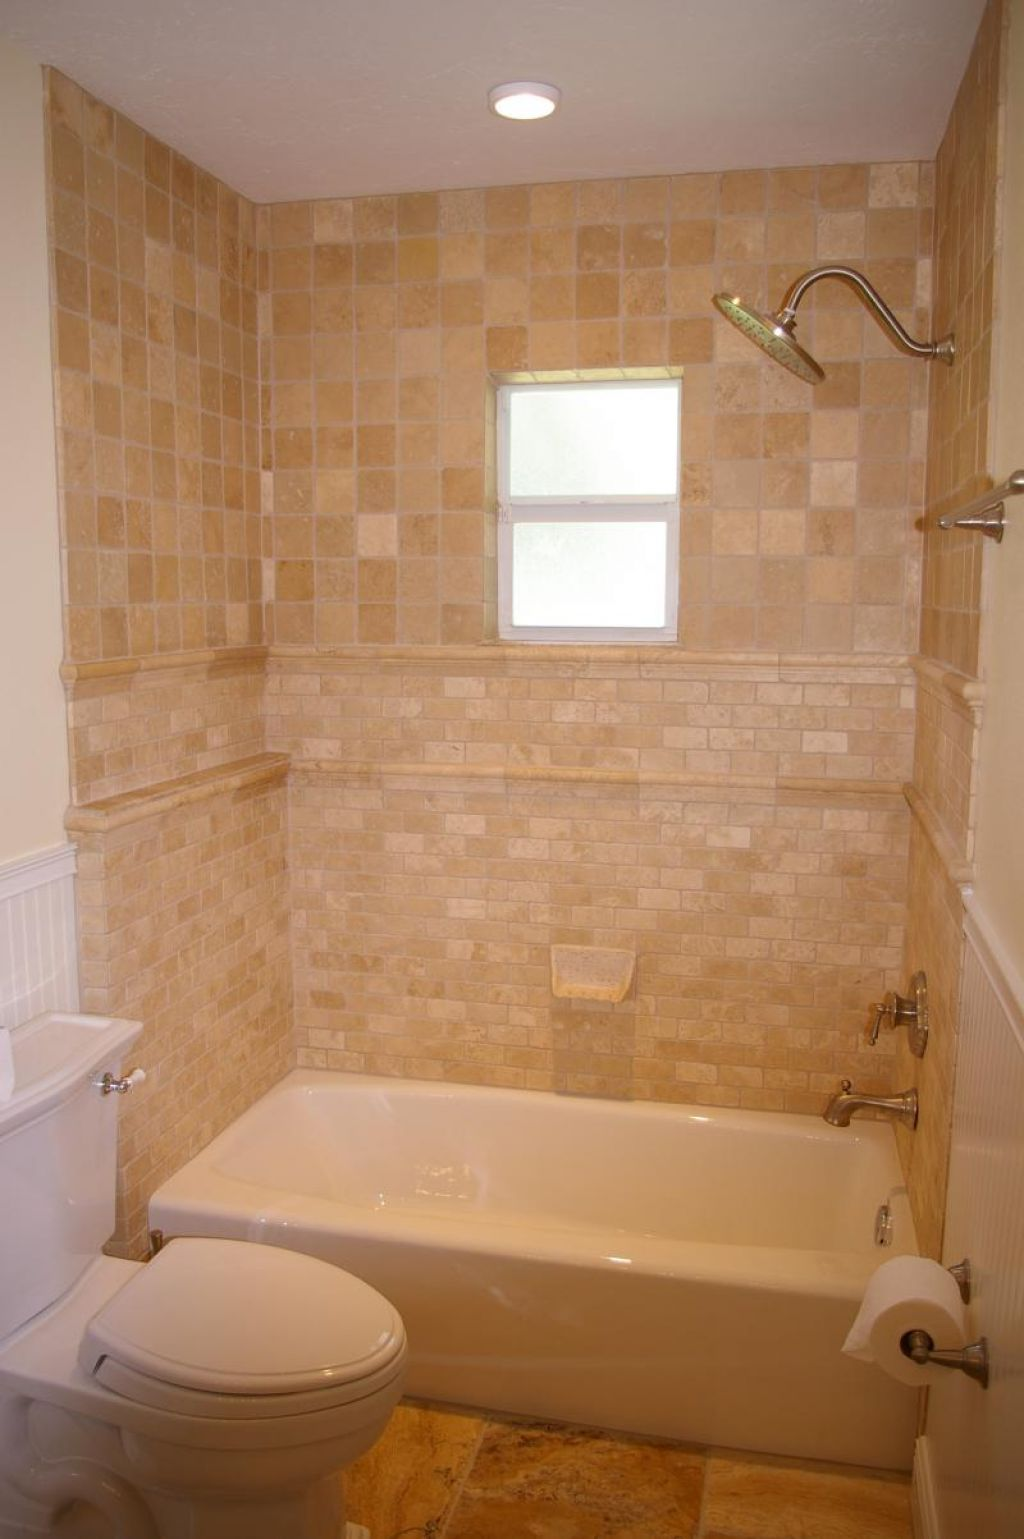 30 shower tile ideas on a budget for Small bathroom tiles